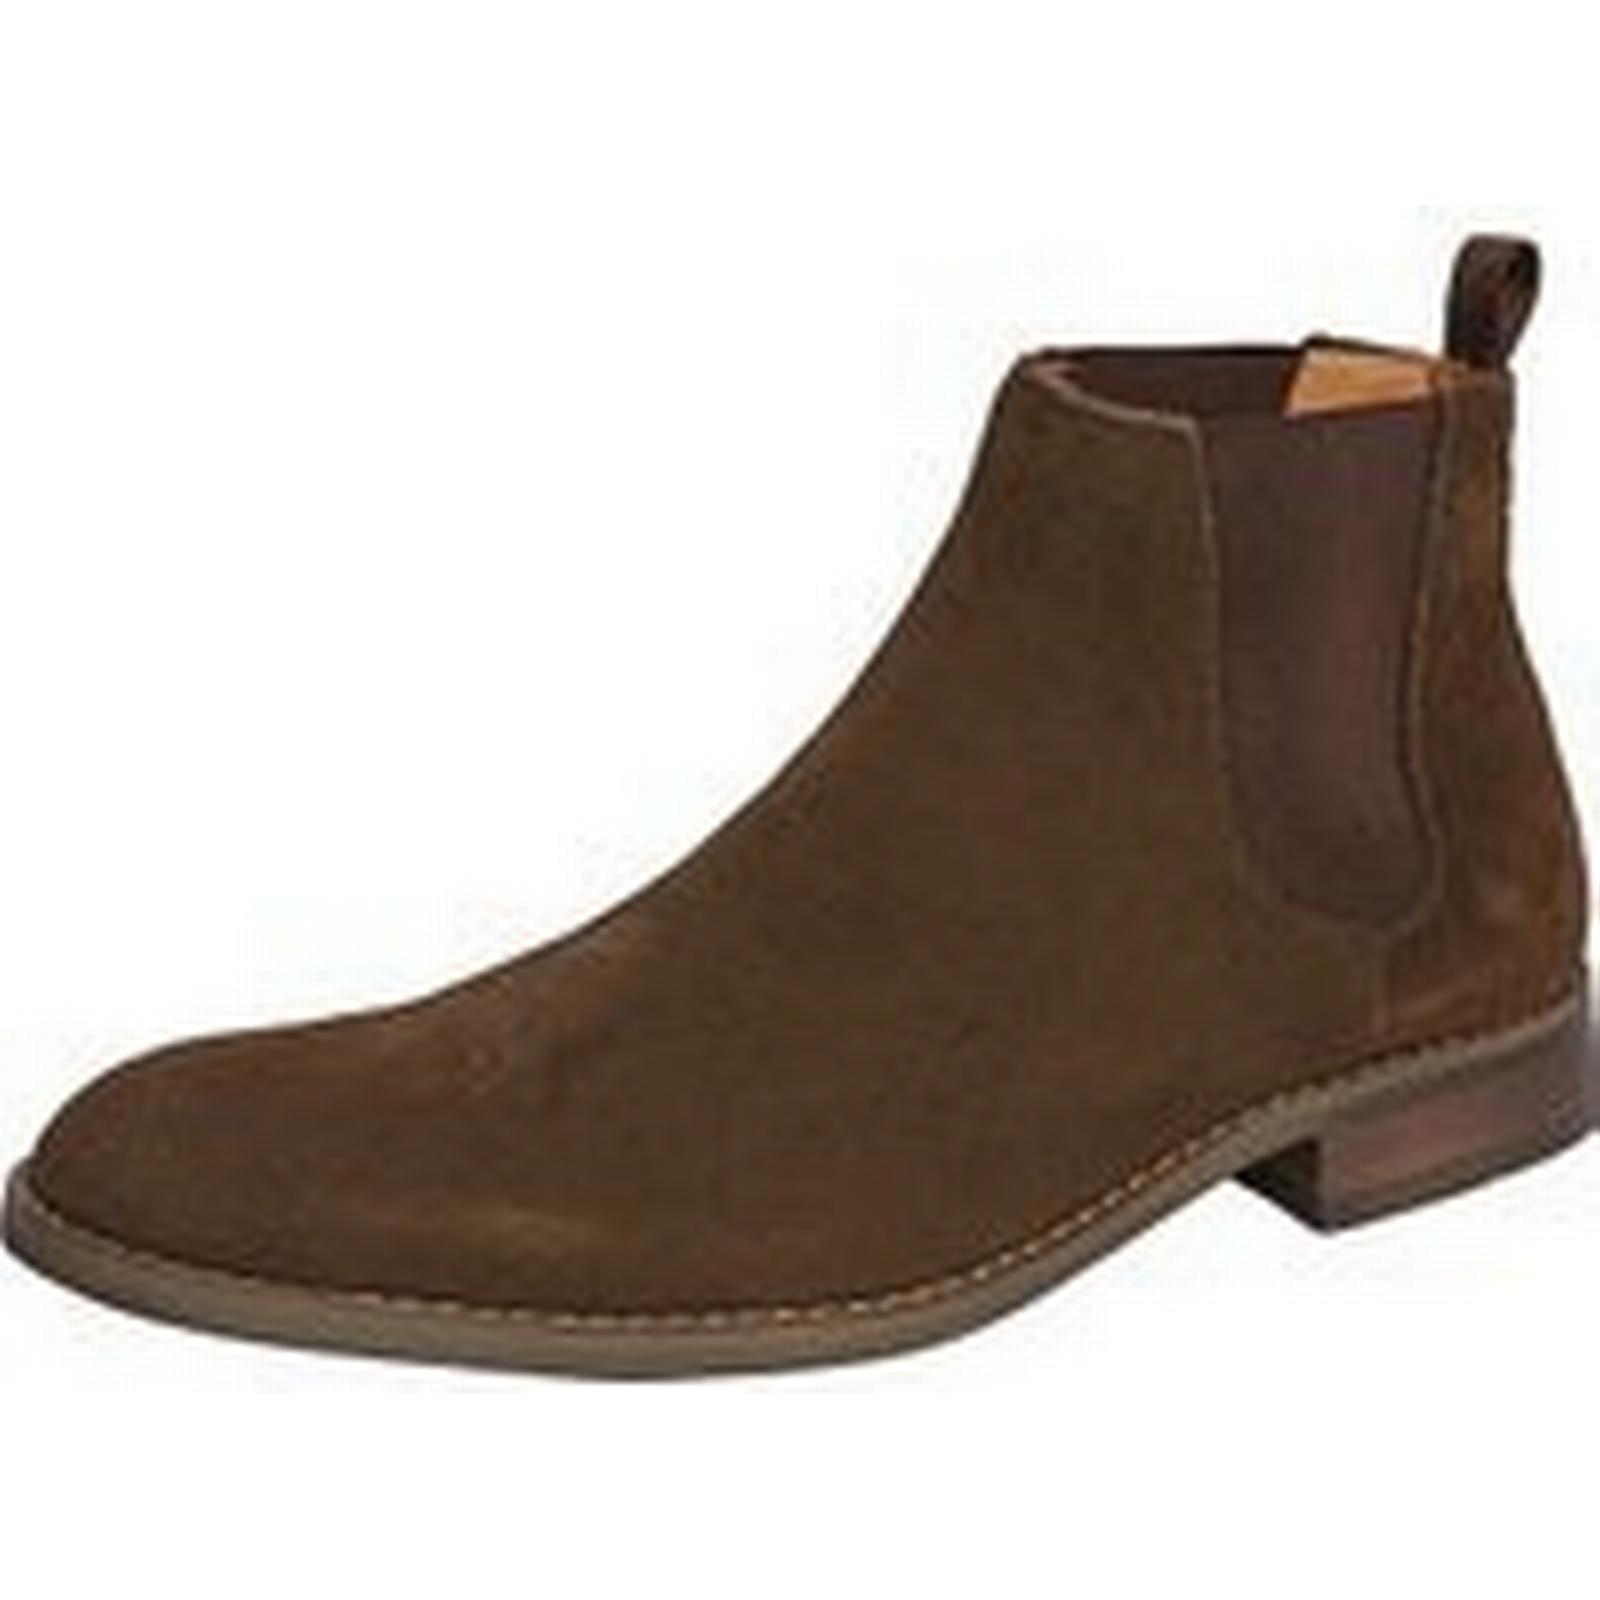 Bonanza (Global) Mens Handmade mens Brown ankle suede leather boots, Mens (Global) fashion suede brown boots 5b19a1